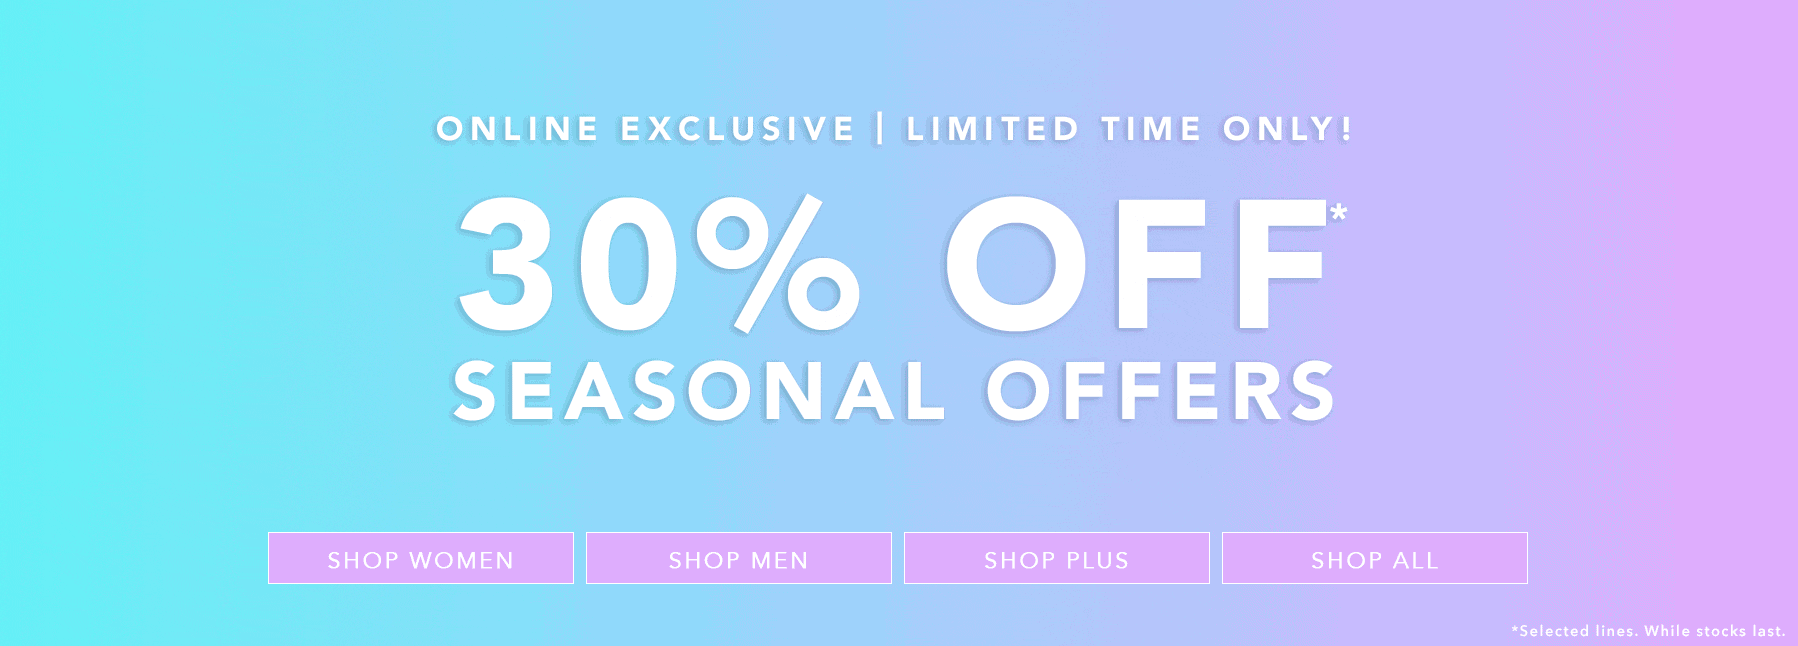 Forever 21: 30% off seasonal offers